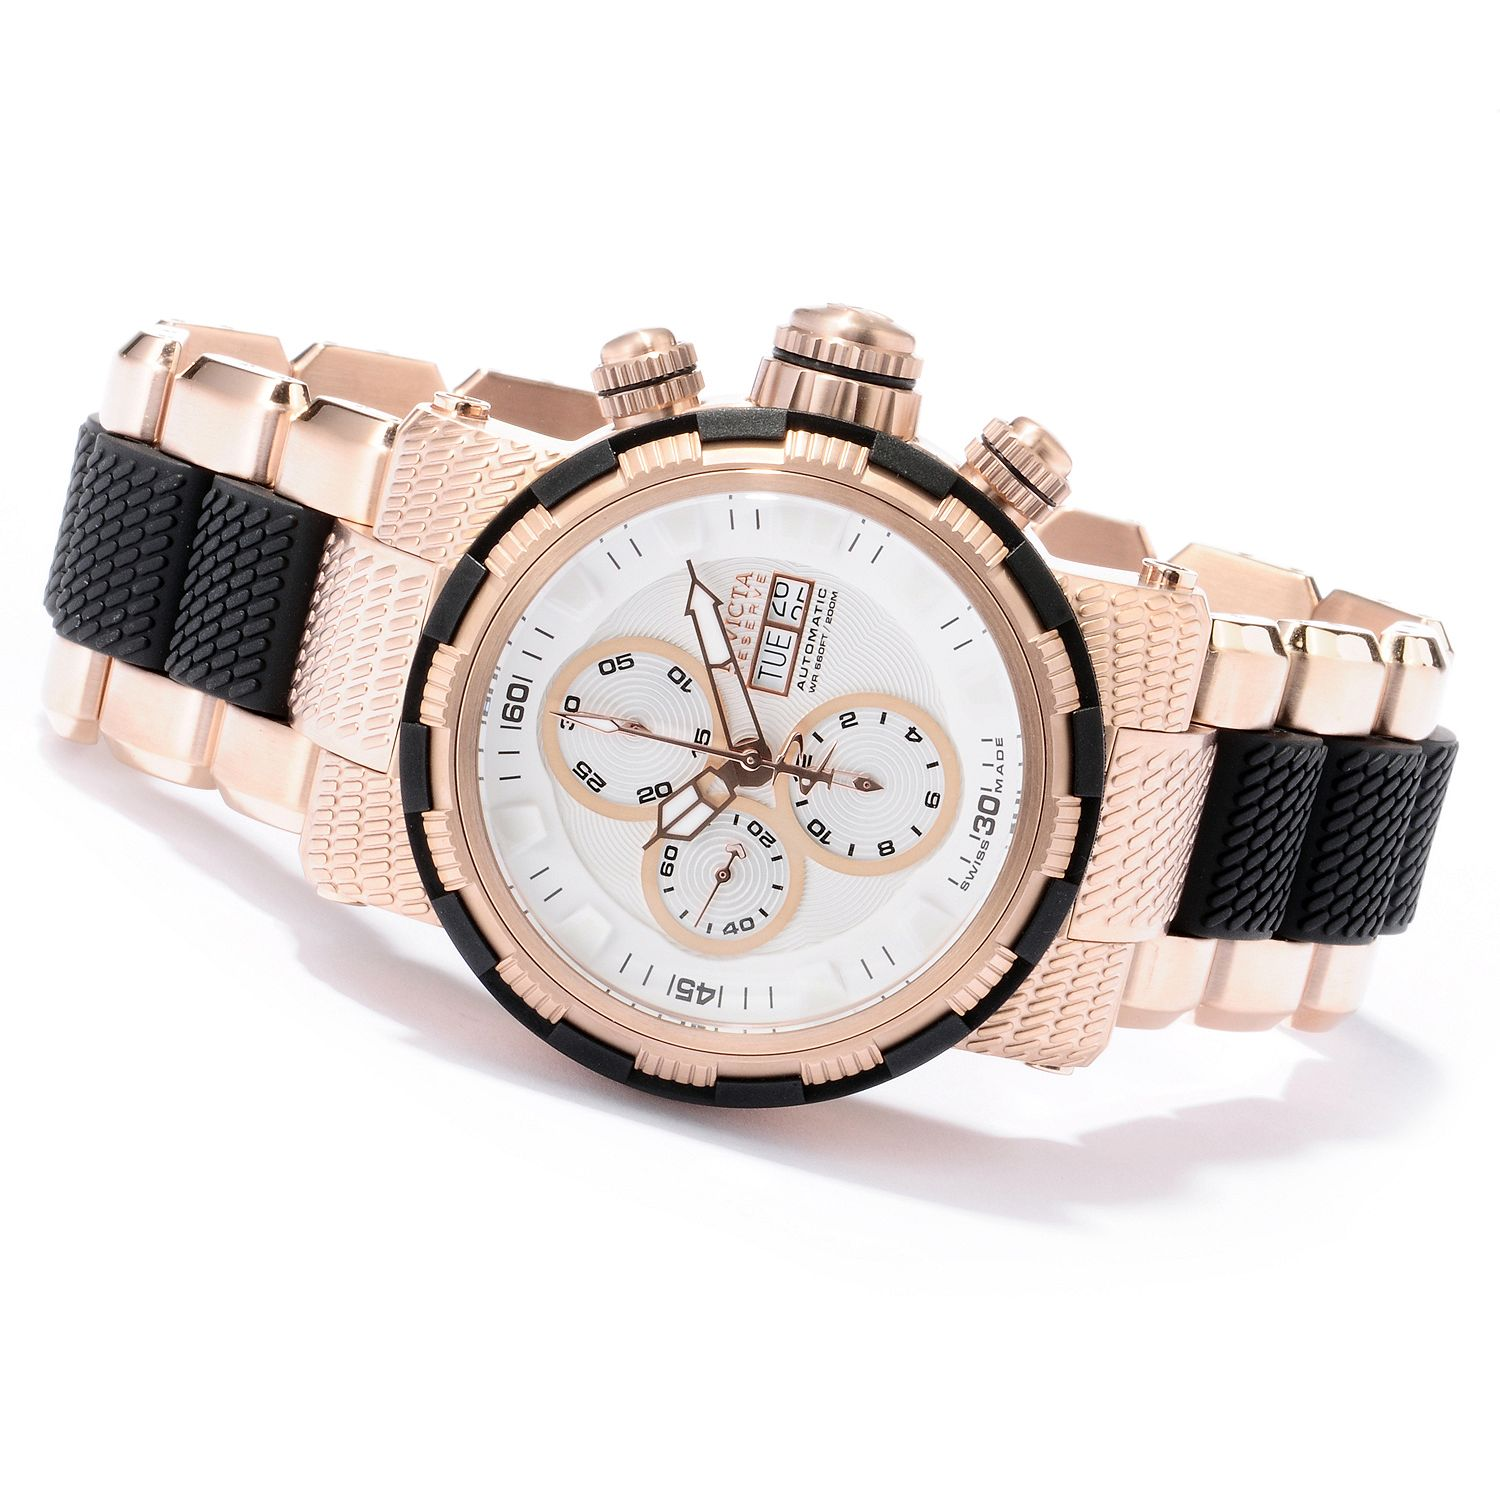 Invicta 12498 Men's Reserve Automatic Chronograph  Rose Tone Bracelet Watch